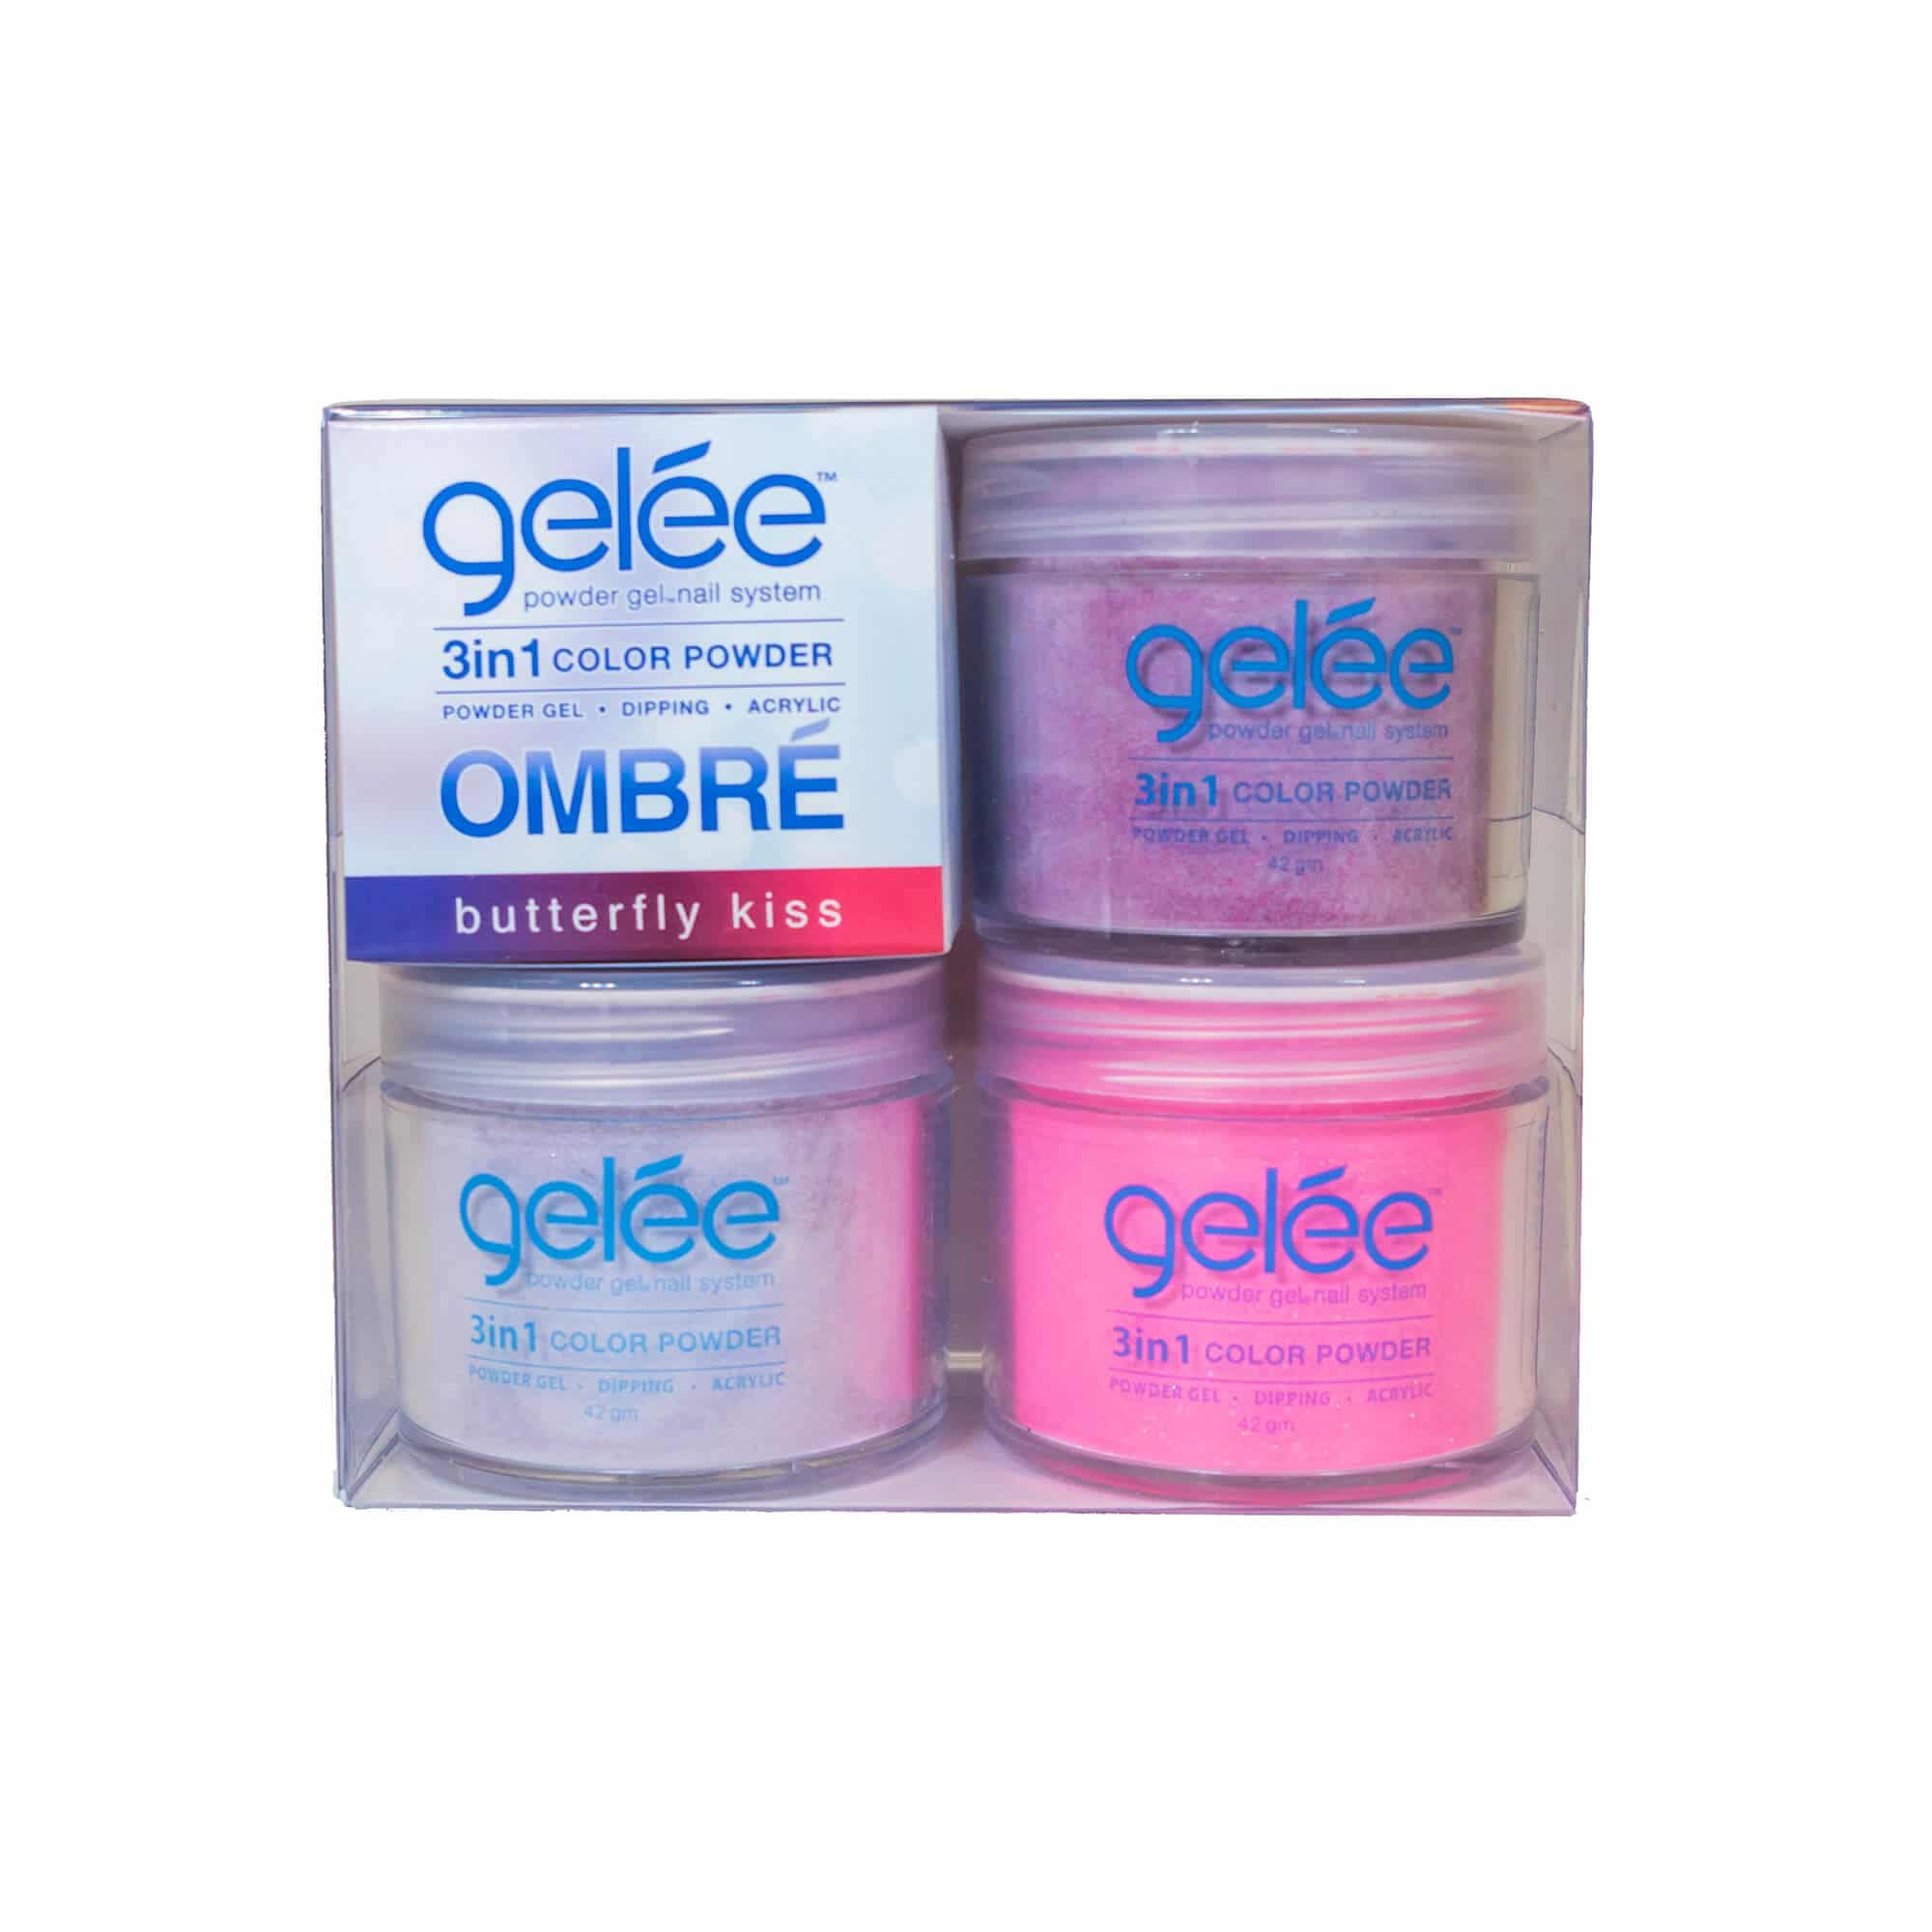 Gelée 3in1 Powder Gel - Butterfly Kiss Ombre Kit | LeChat Nails